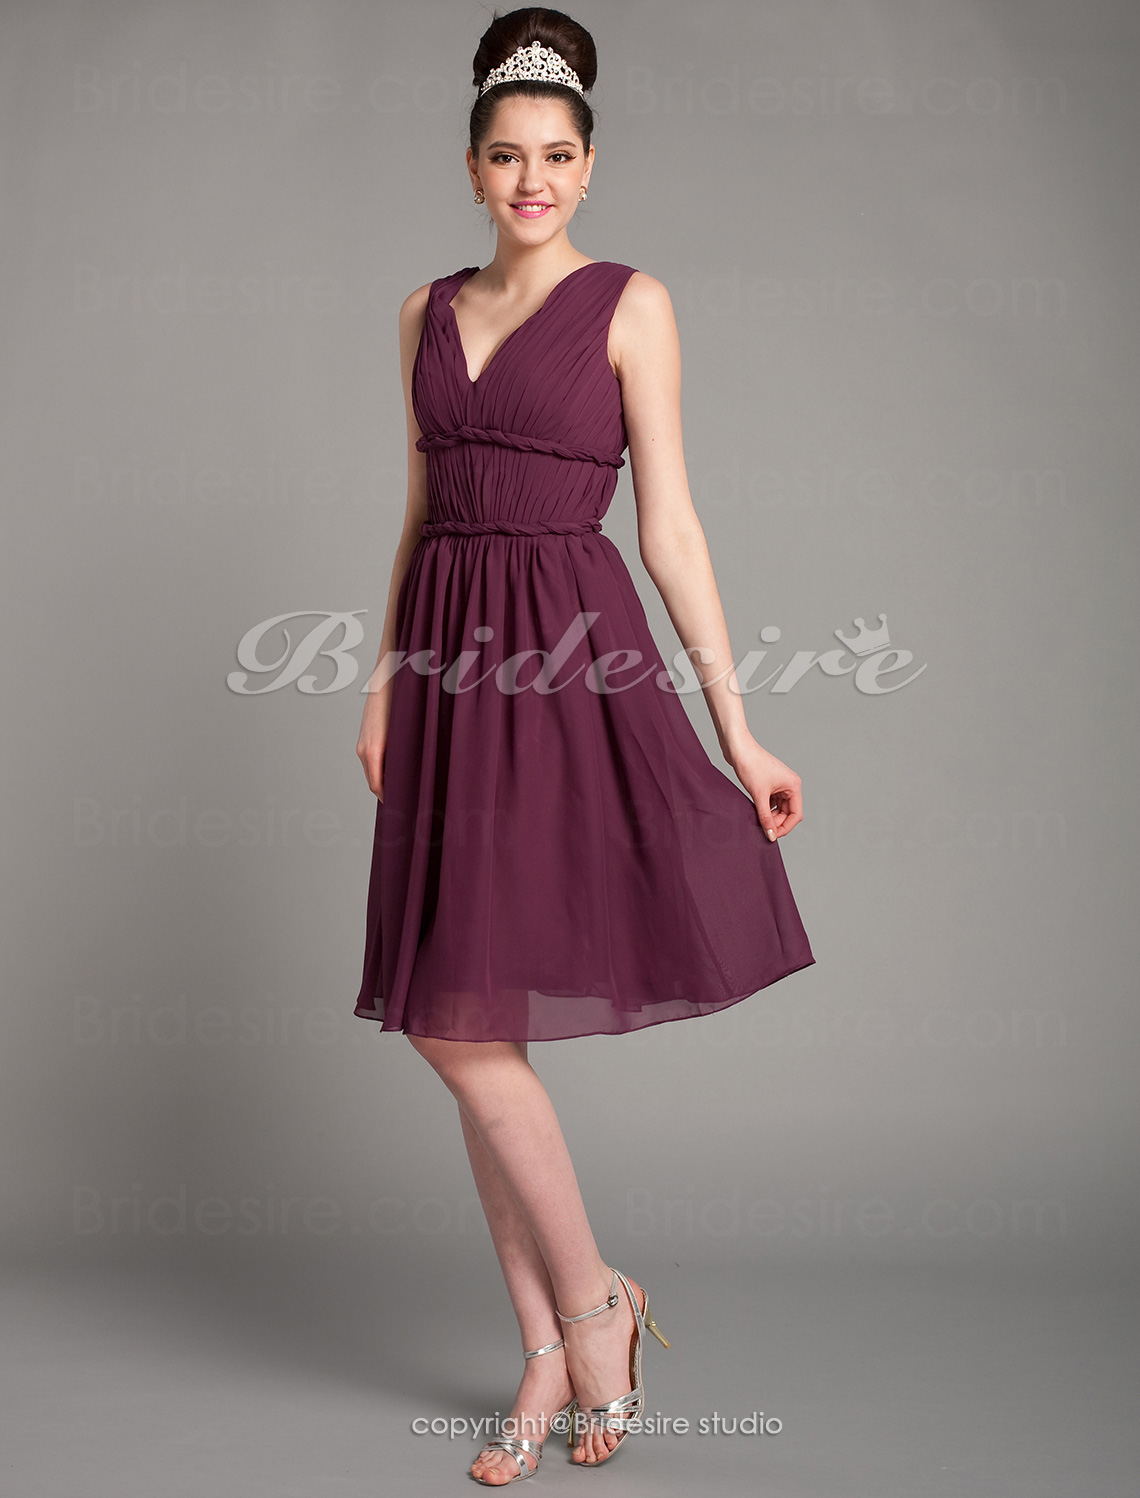 A-line Knee-length Chiffon Off-the-shoulder Bridesmaid Dress